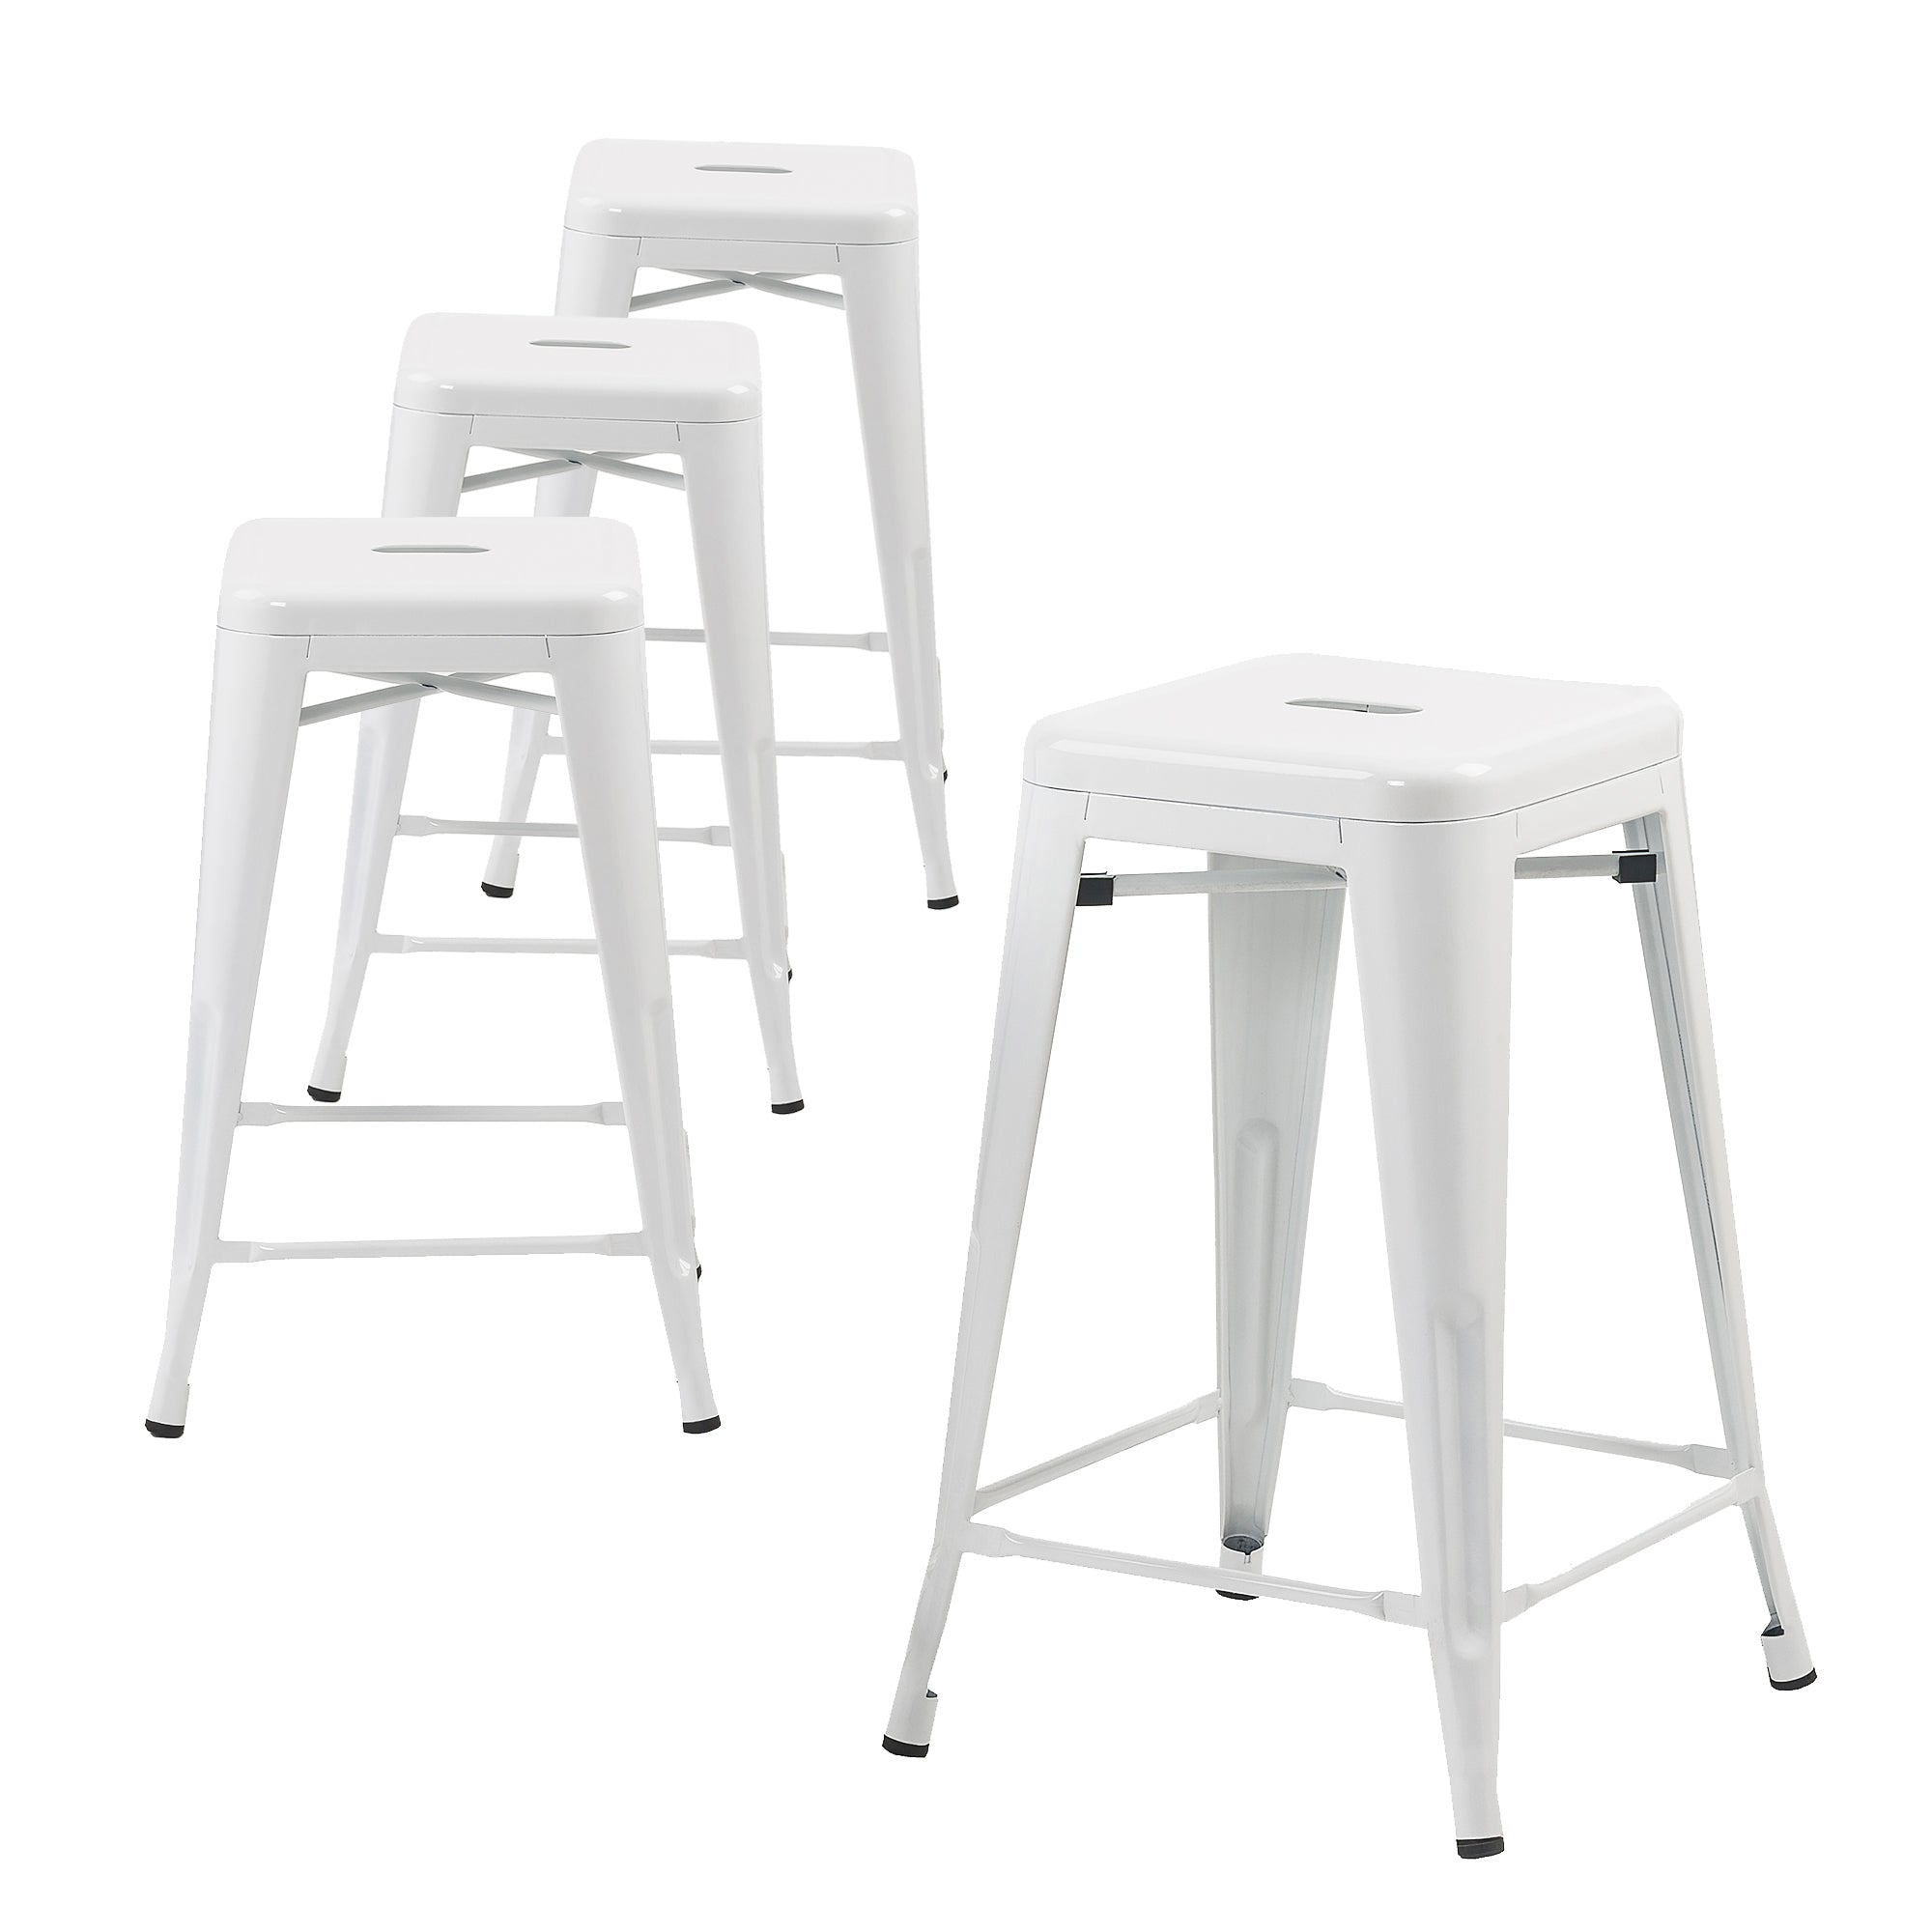 Buschman Set Of 4 White 24 Inch Counter Height Metal Bar Stools